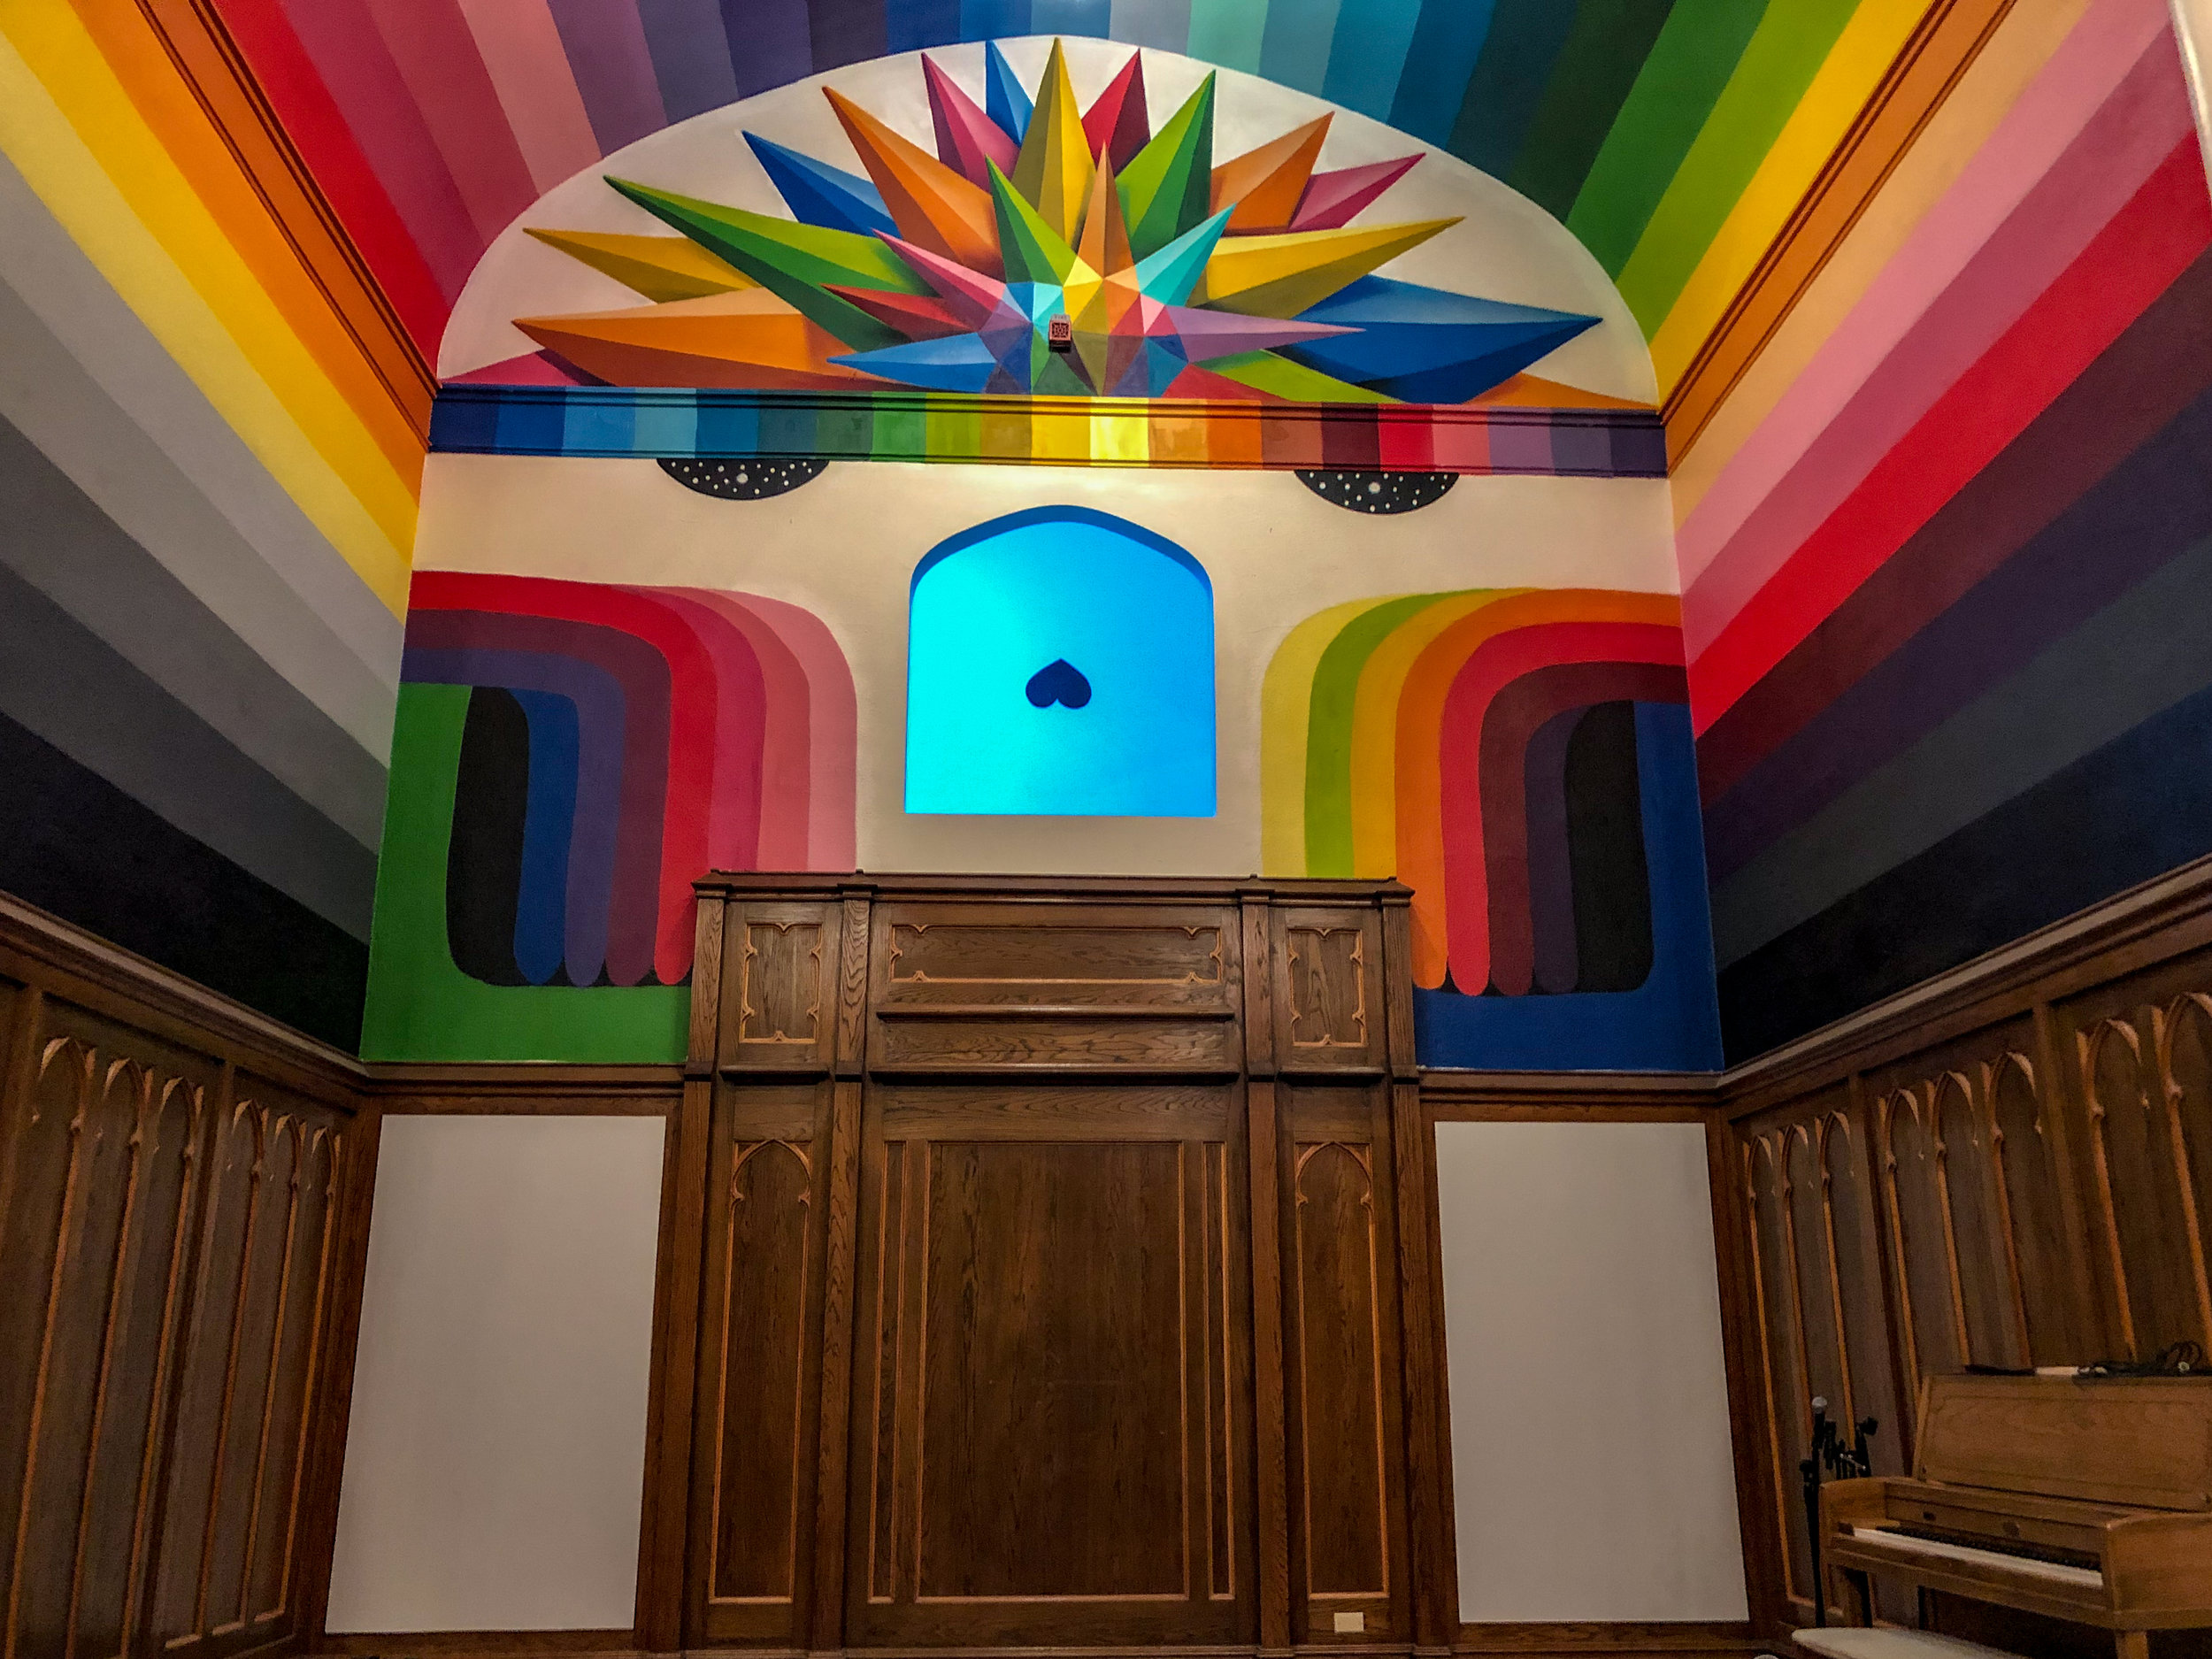 The brightly colored back wall of the church.